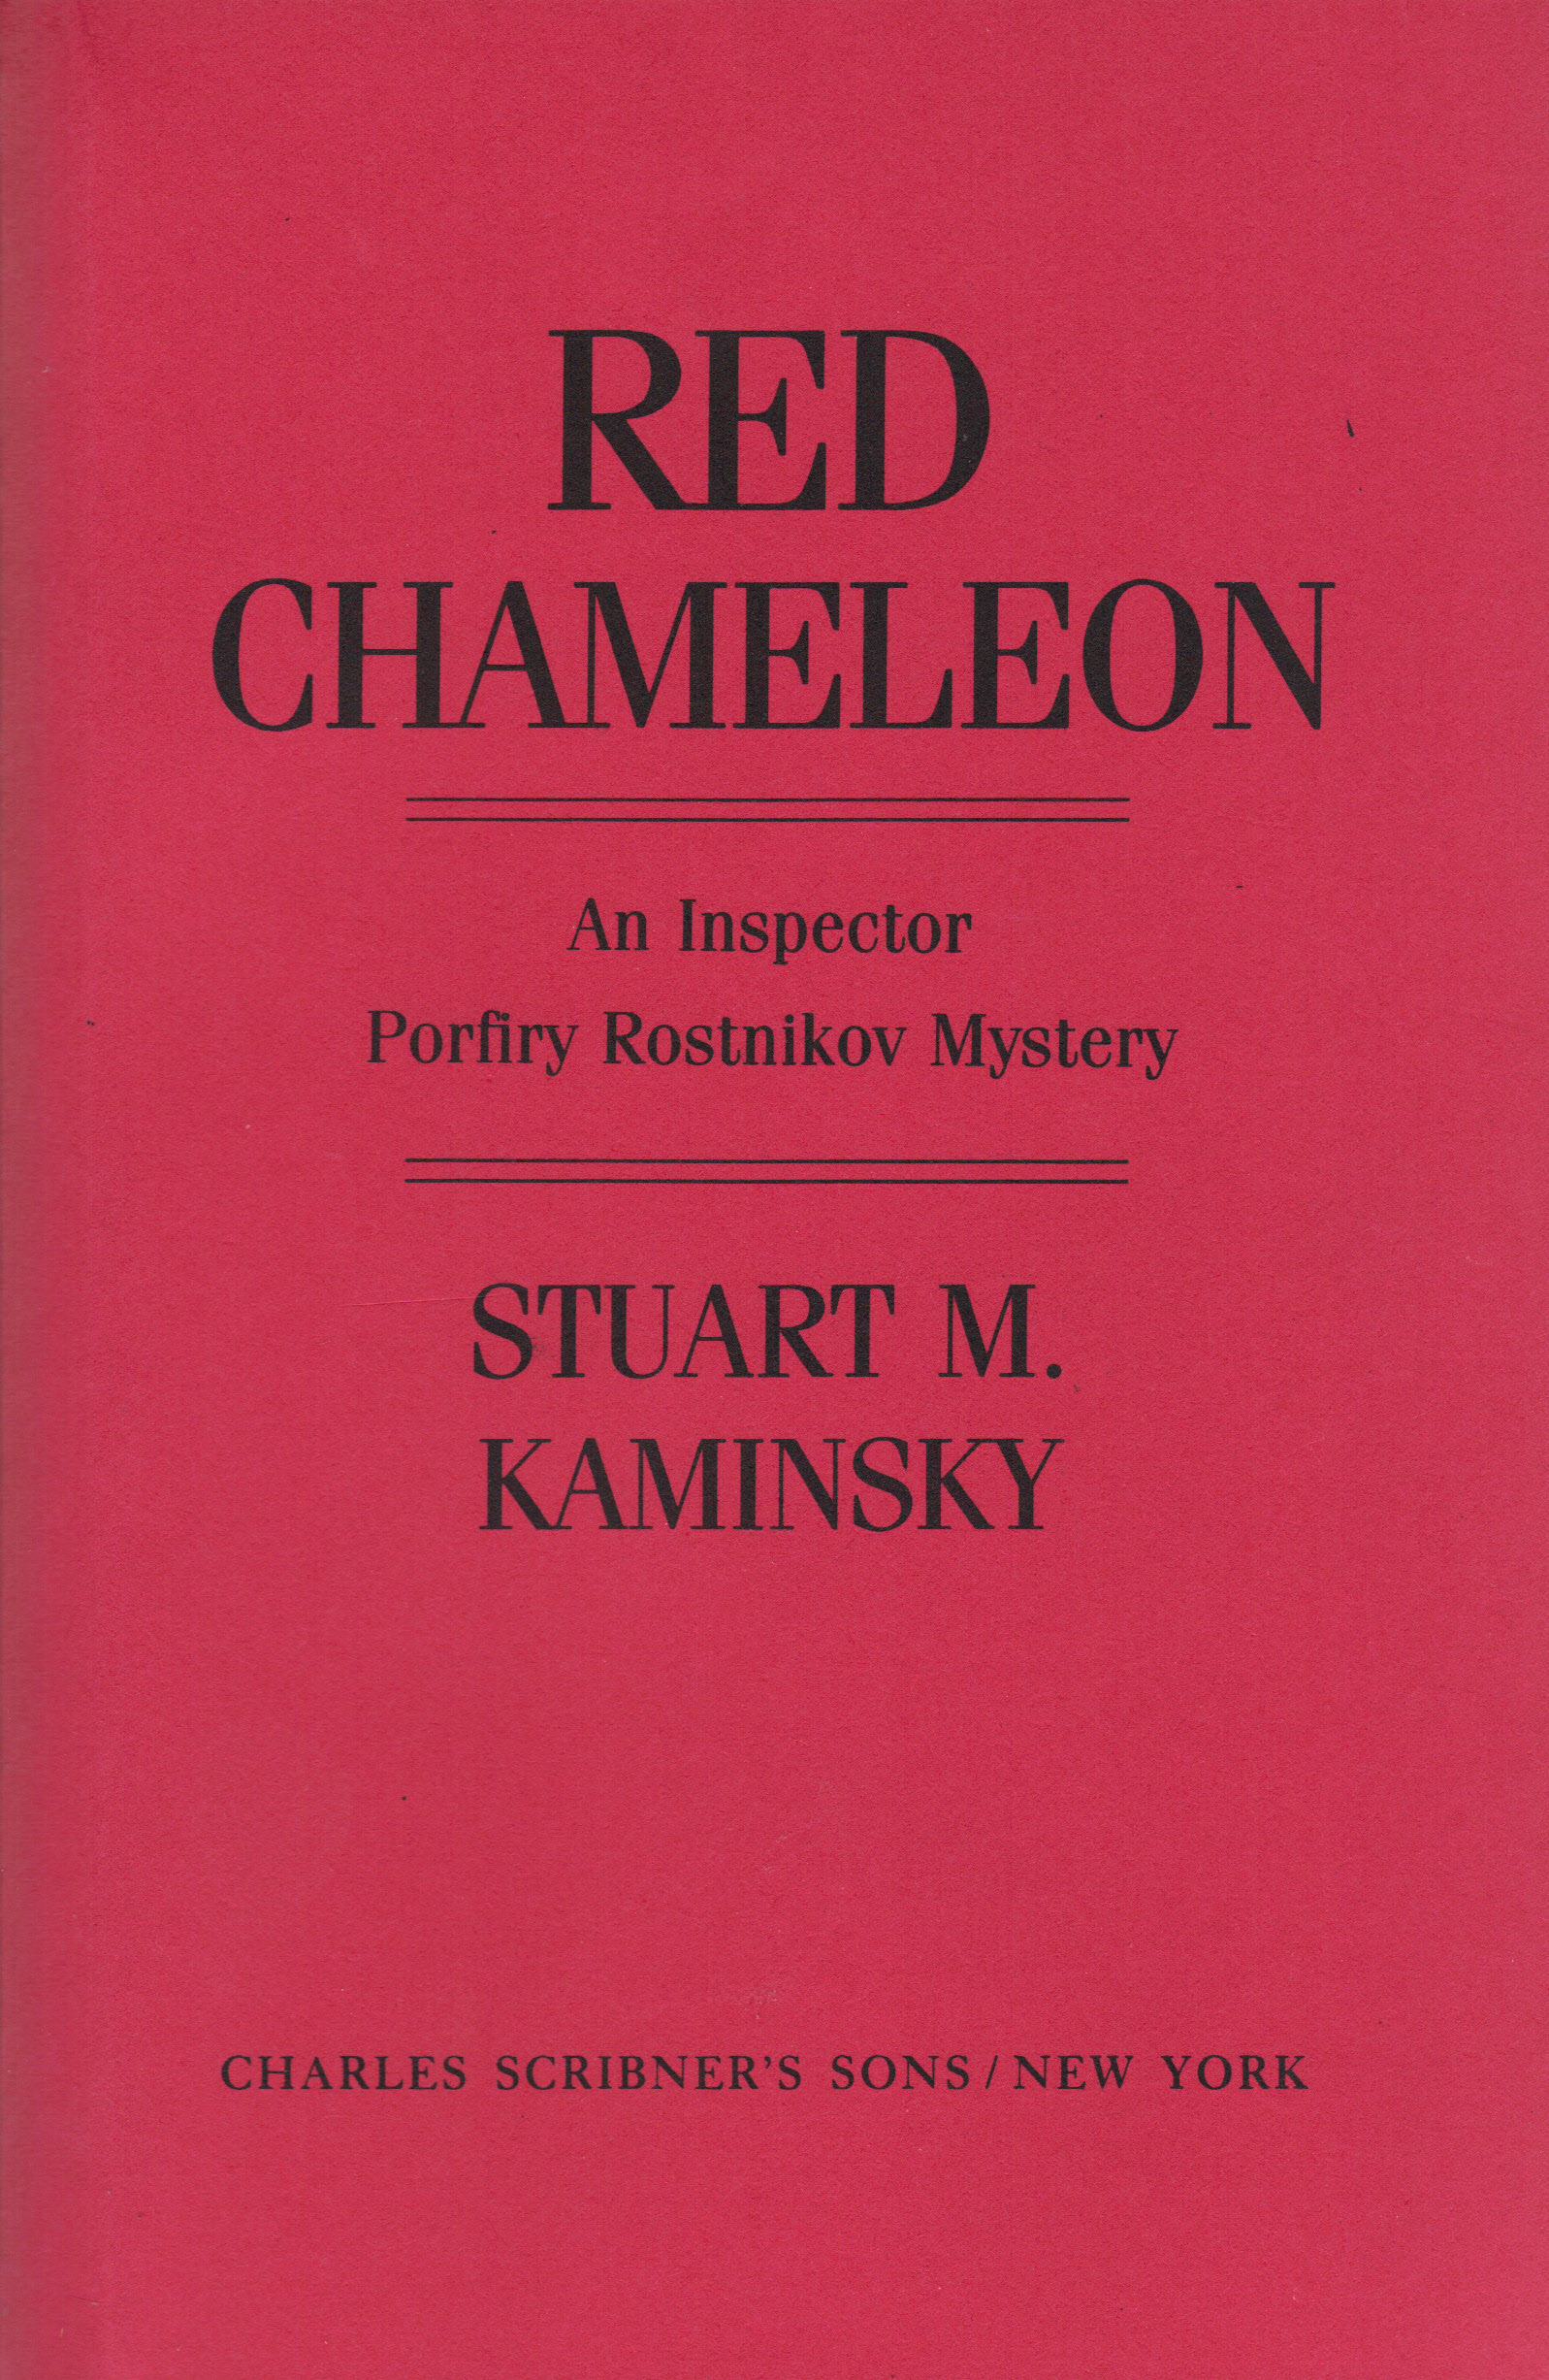 Image for RED CHAMELEON